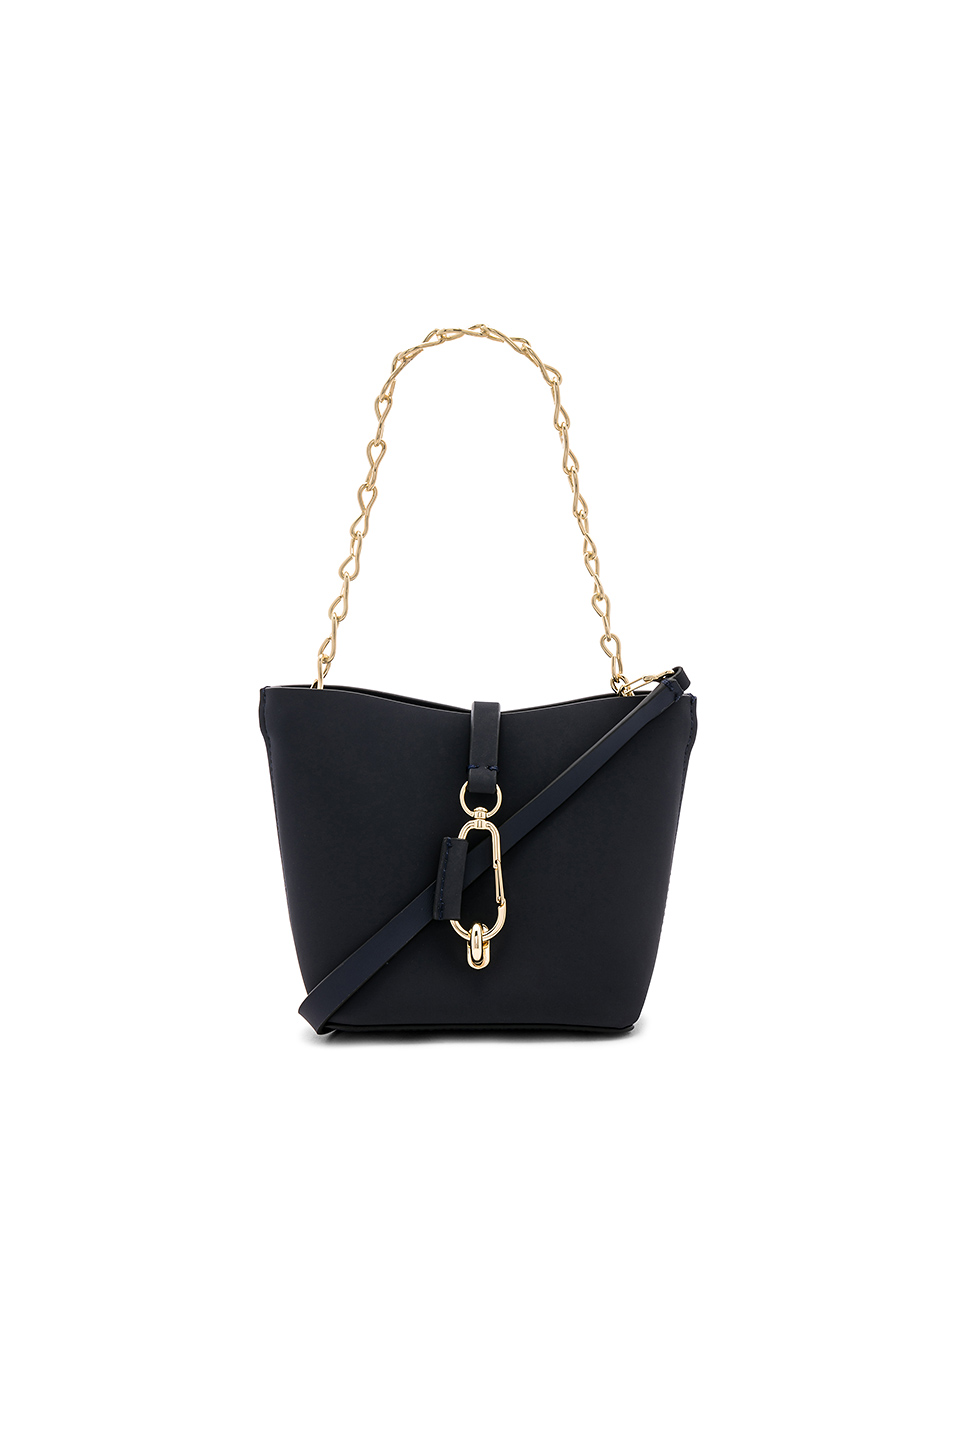 3285e8ee7795 Buy Original Zac Zac Posen Belay Mini Chain Hobo Bag at Indonesia ...